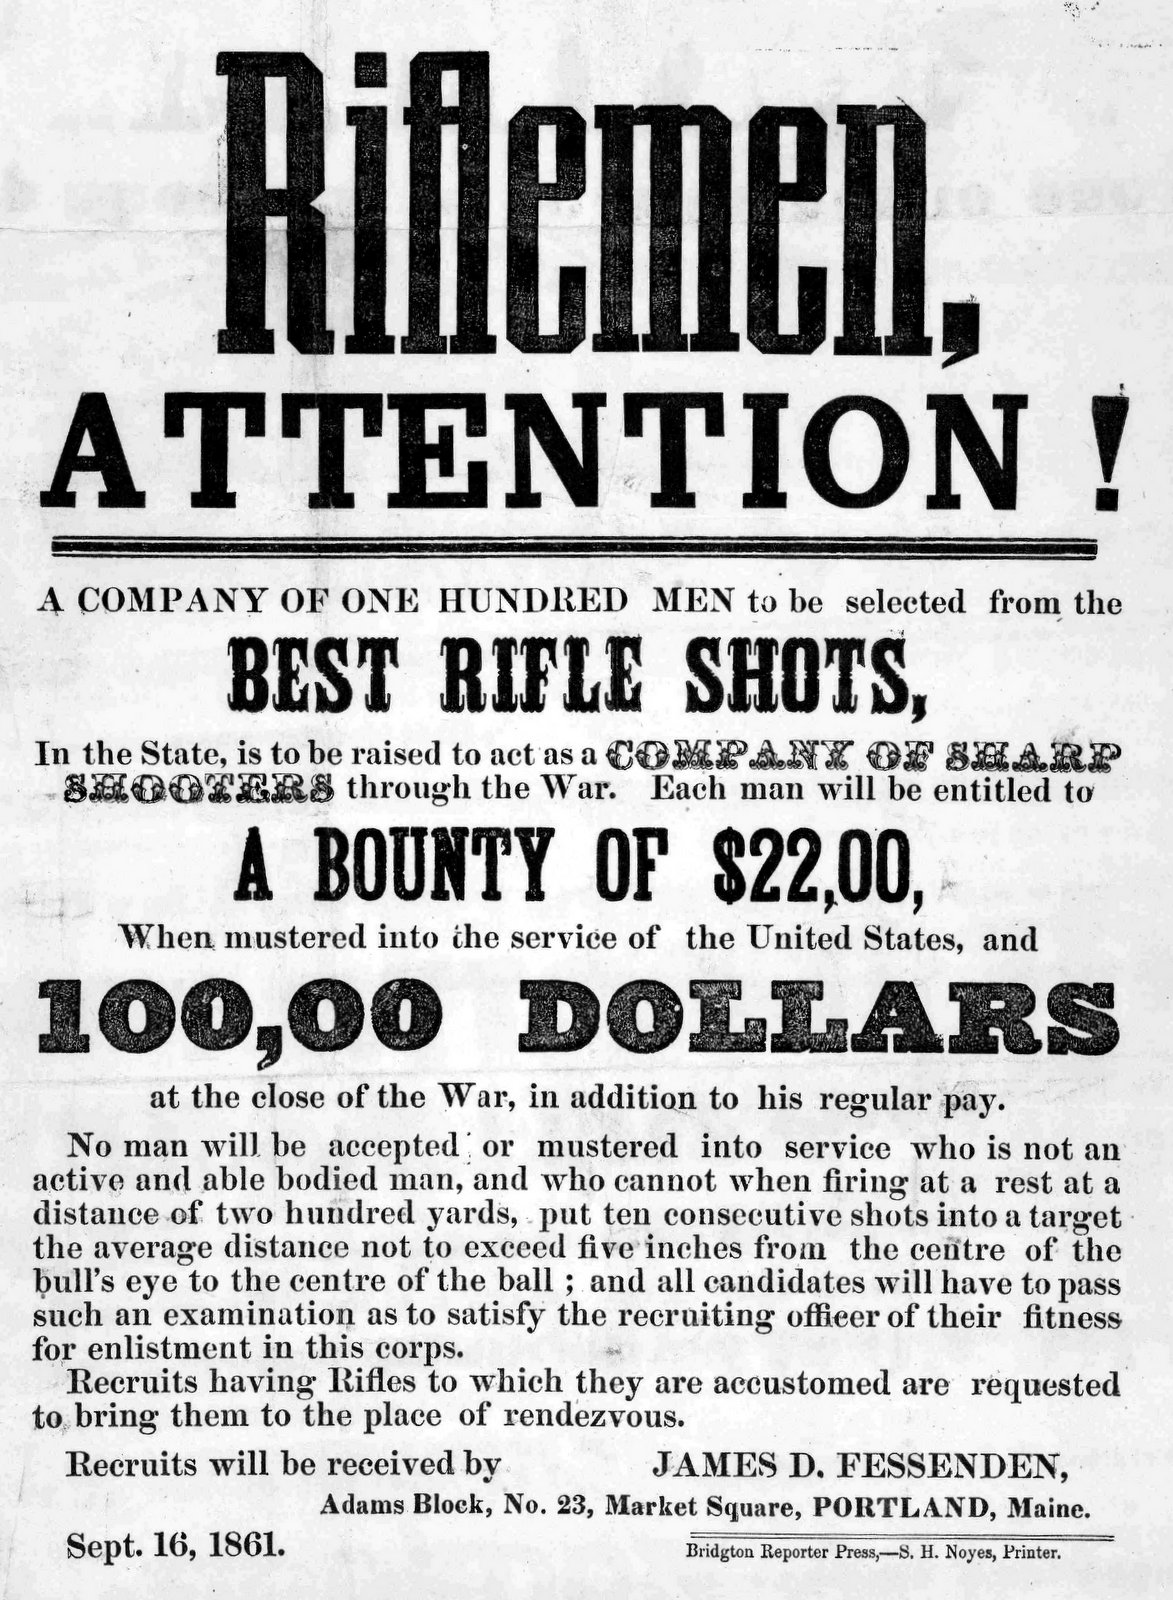 A company of one hundred men to be selected from the best rifle shots